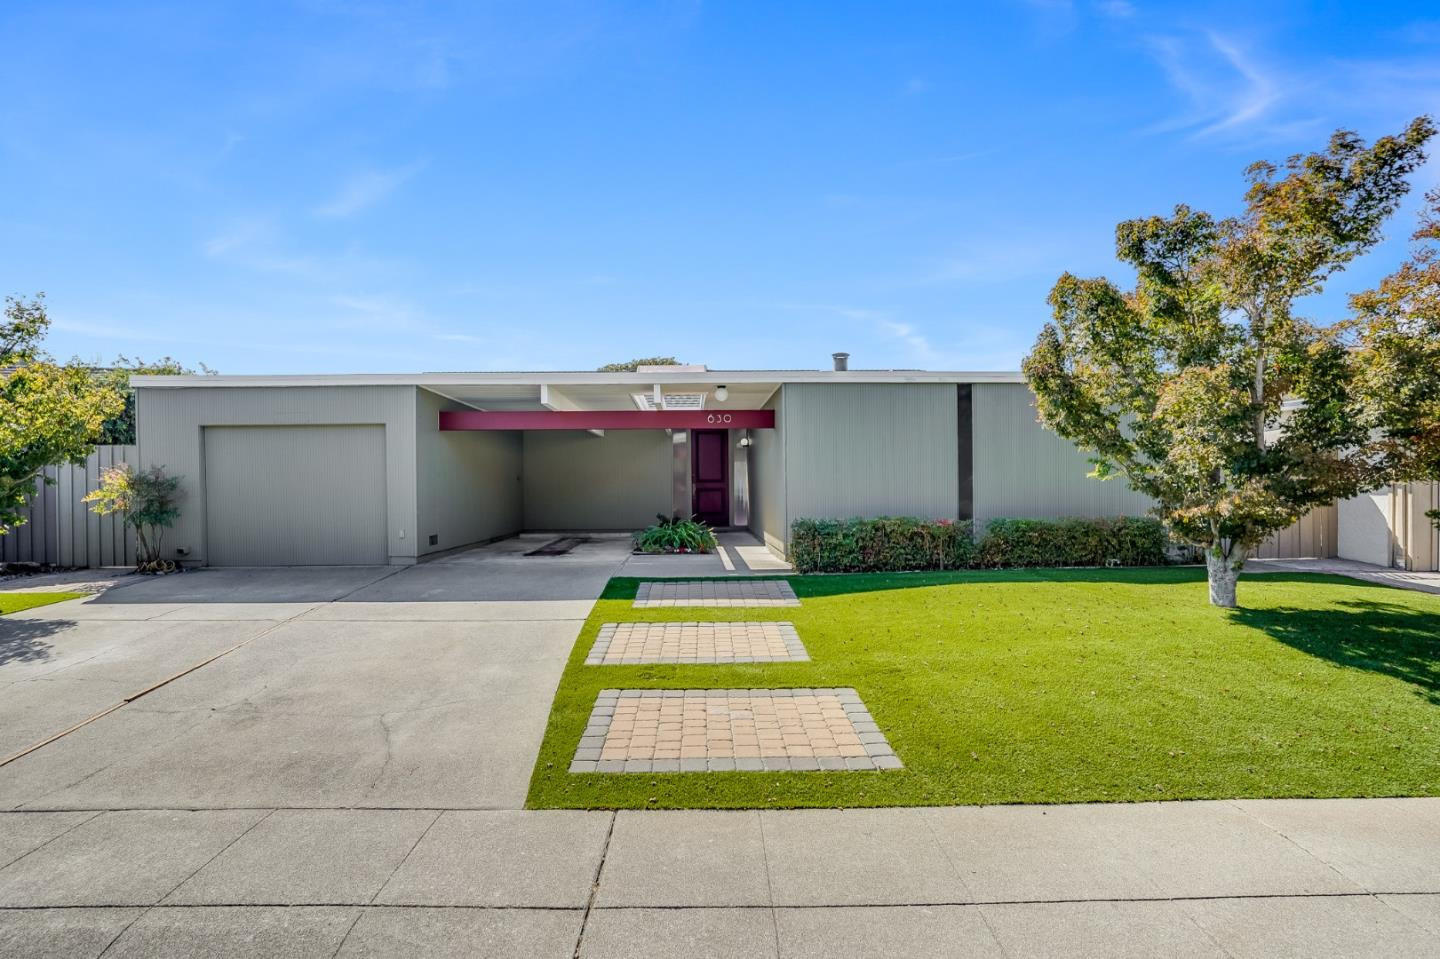 Welcome Home! This beautiful Eichler welcomes you with stunning, vaulted ceilings and an abundance of natural light. The spacious entry provides endless options, from formal dining to a home office. This beautiful 3 bed 2 bath home features a primary suite with an en suite bath and walk in closet. Enjoy the view of the serene, wrap-around backyard from the sliding glass doors throughout the home. Ideally located near Foster citys top rated schools, beautiful parks, lagoons, nearby shopping, the PJCC, and Quick access to 92 and 101. You dont want to miss this beautiful home!